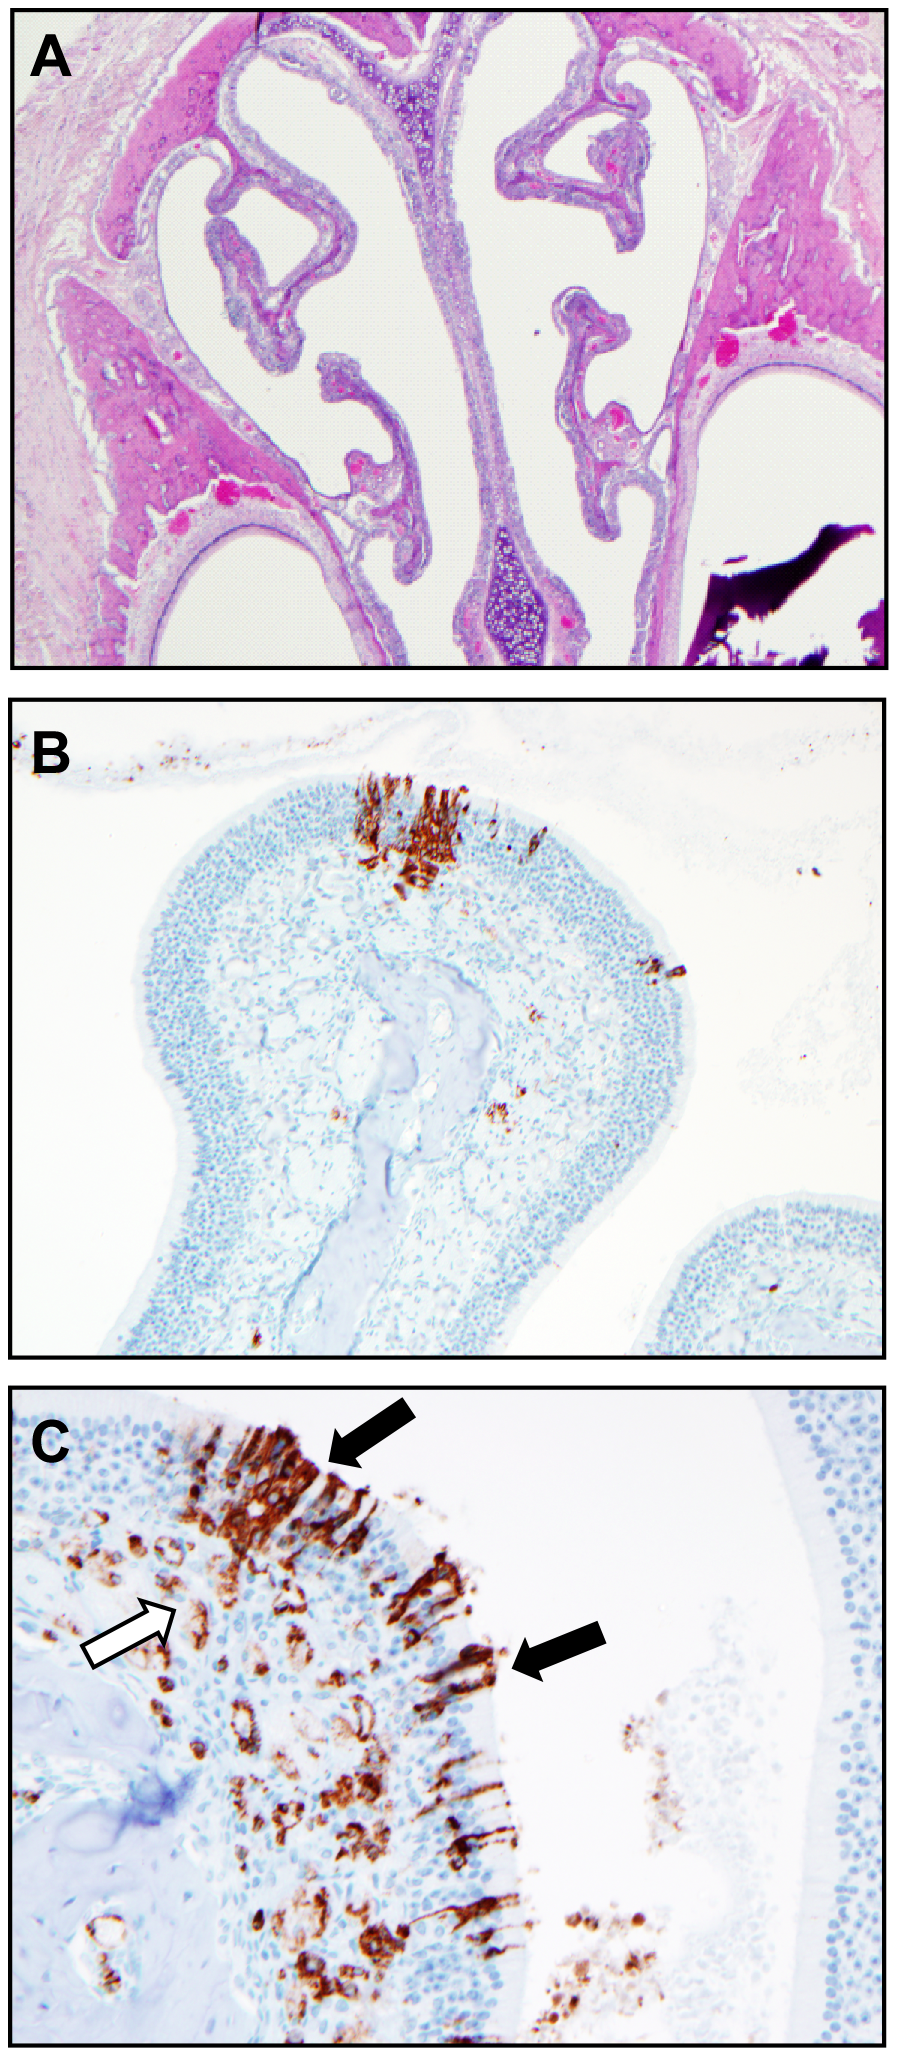 Histological analysis of the upper respiratory tract of Andes virus infected hamsters.